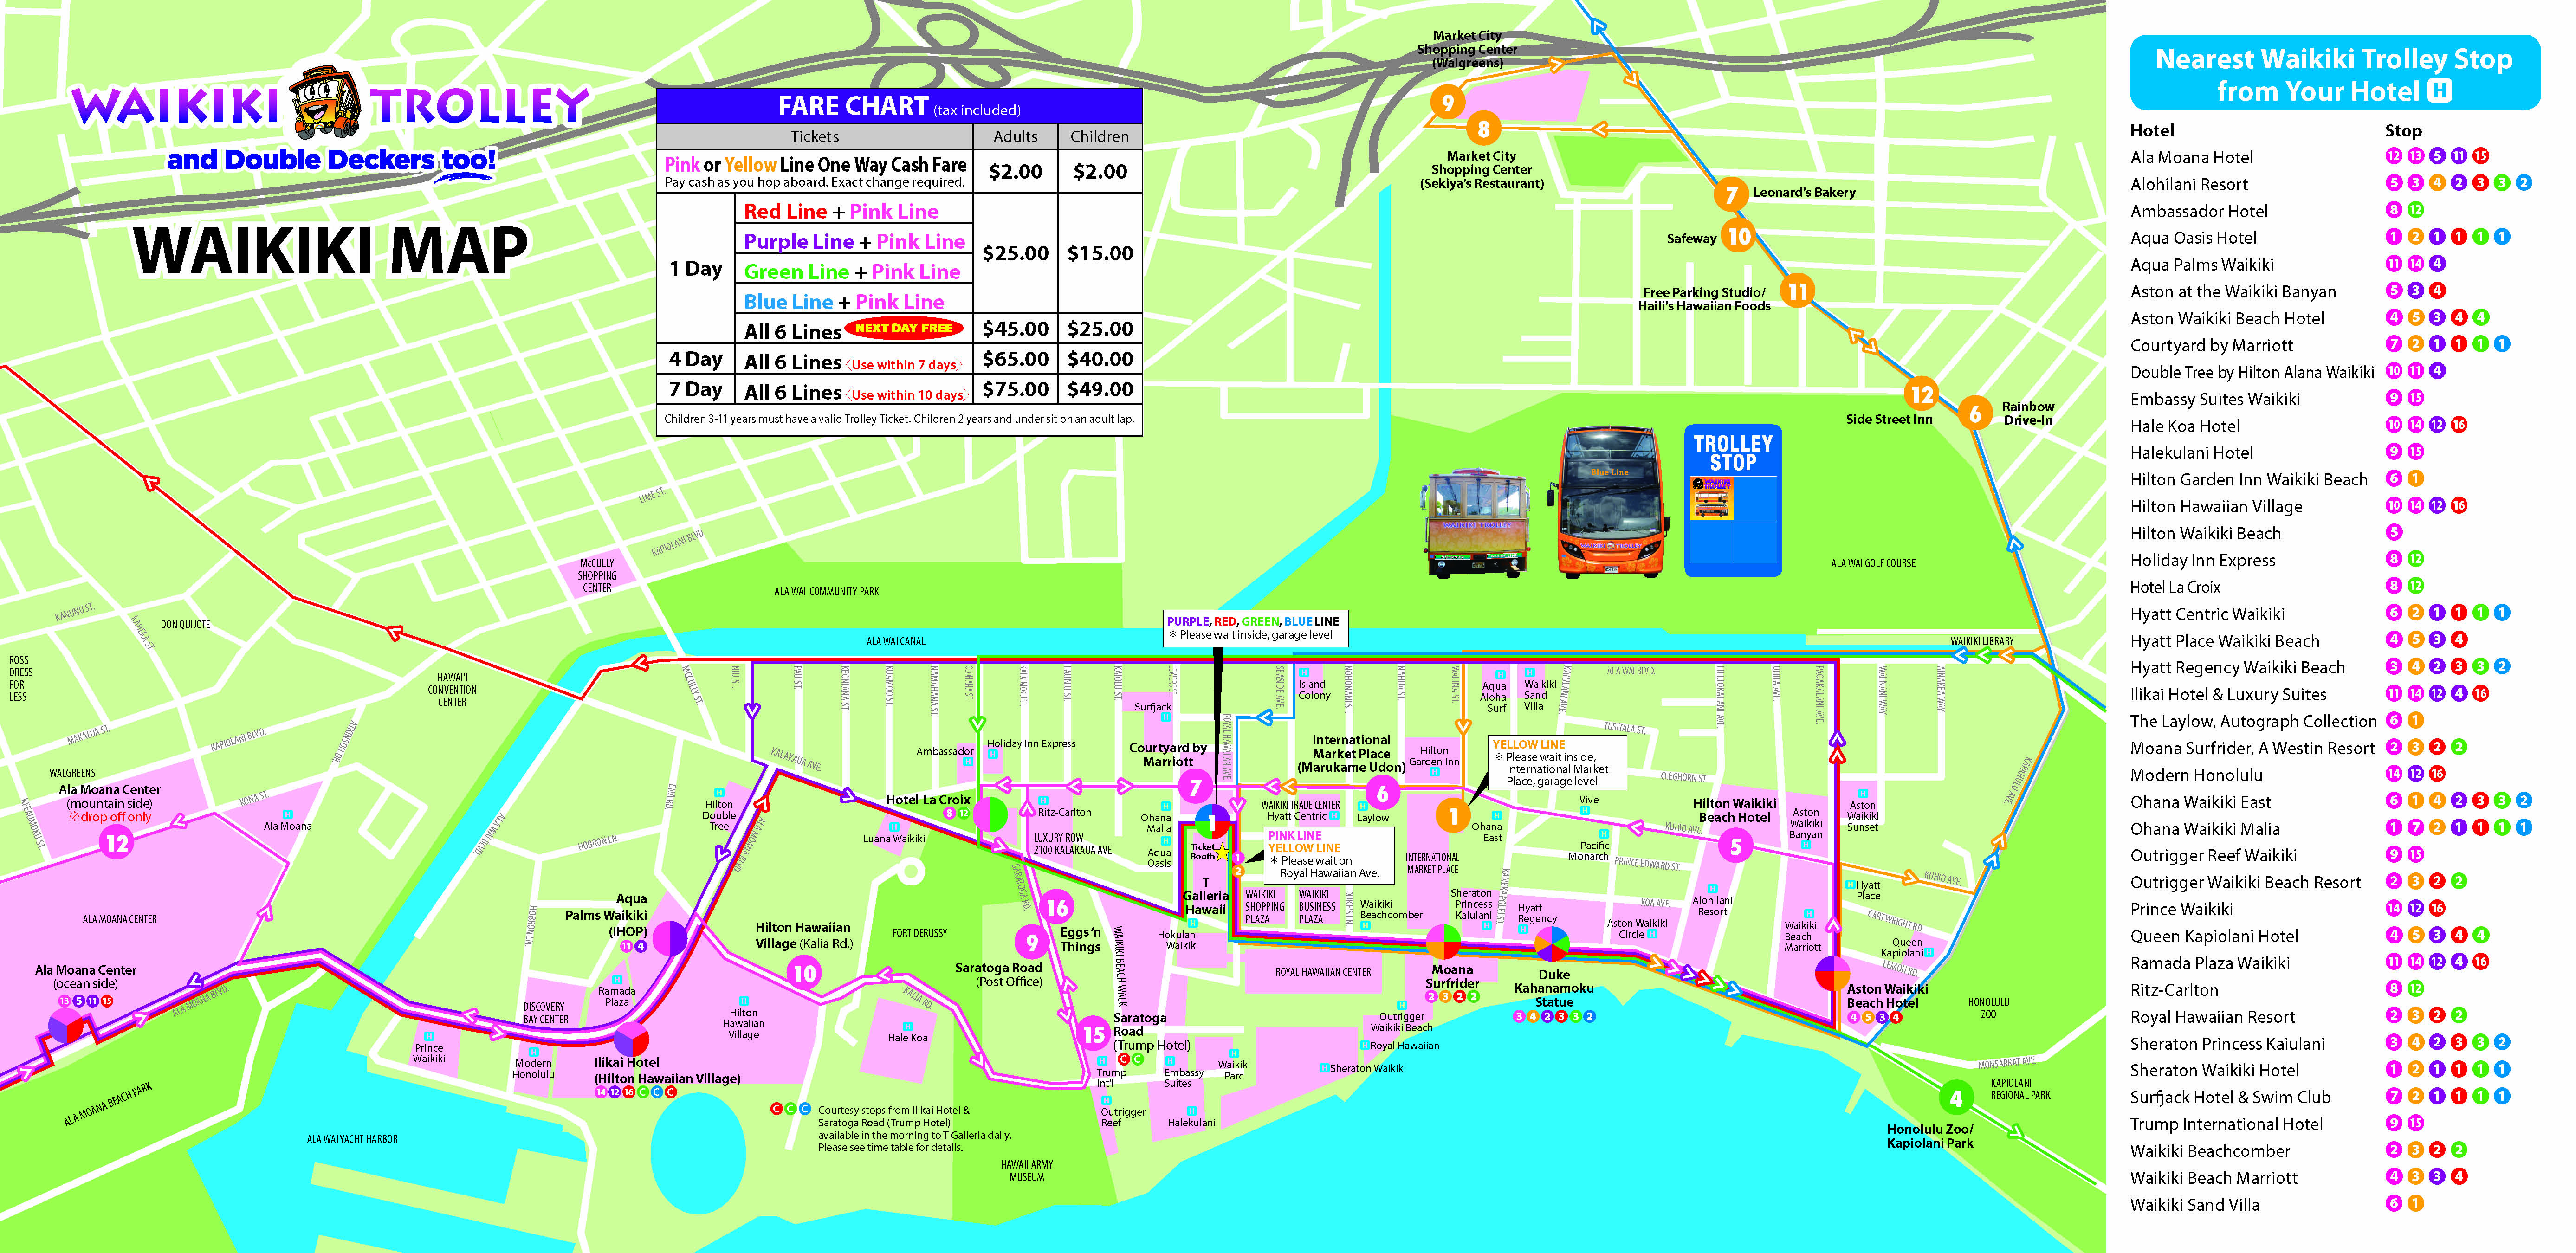 Waikiki Trolley Map